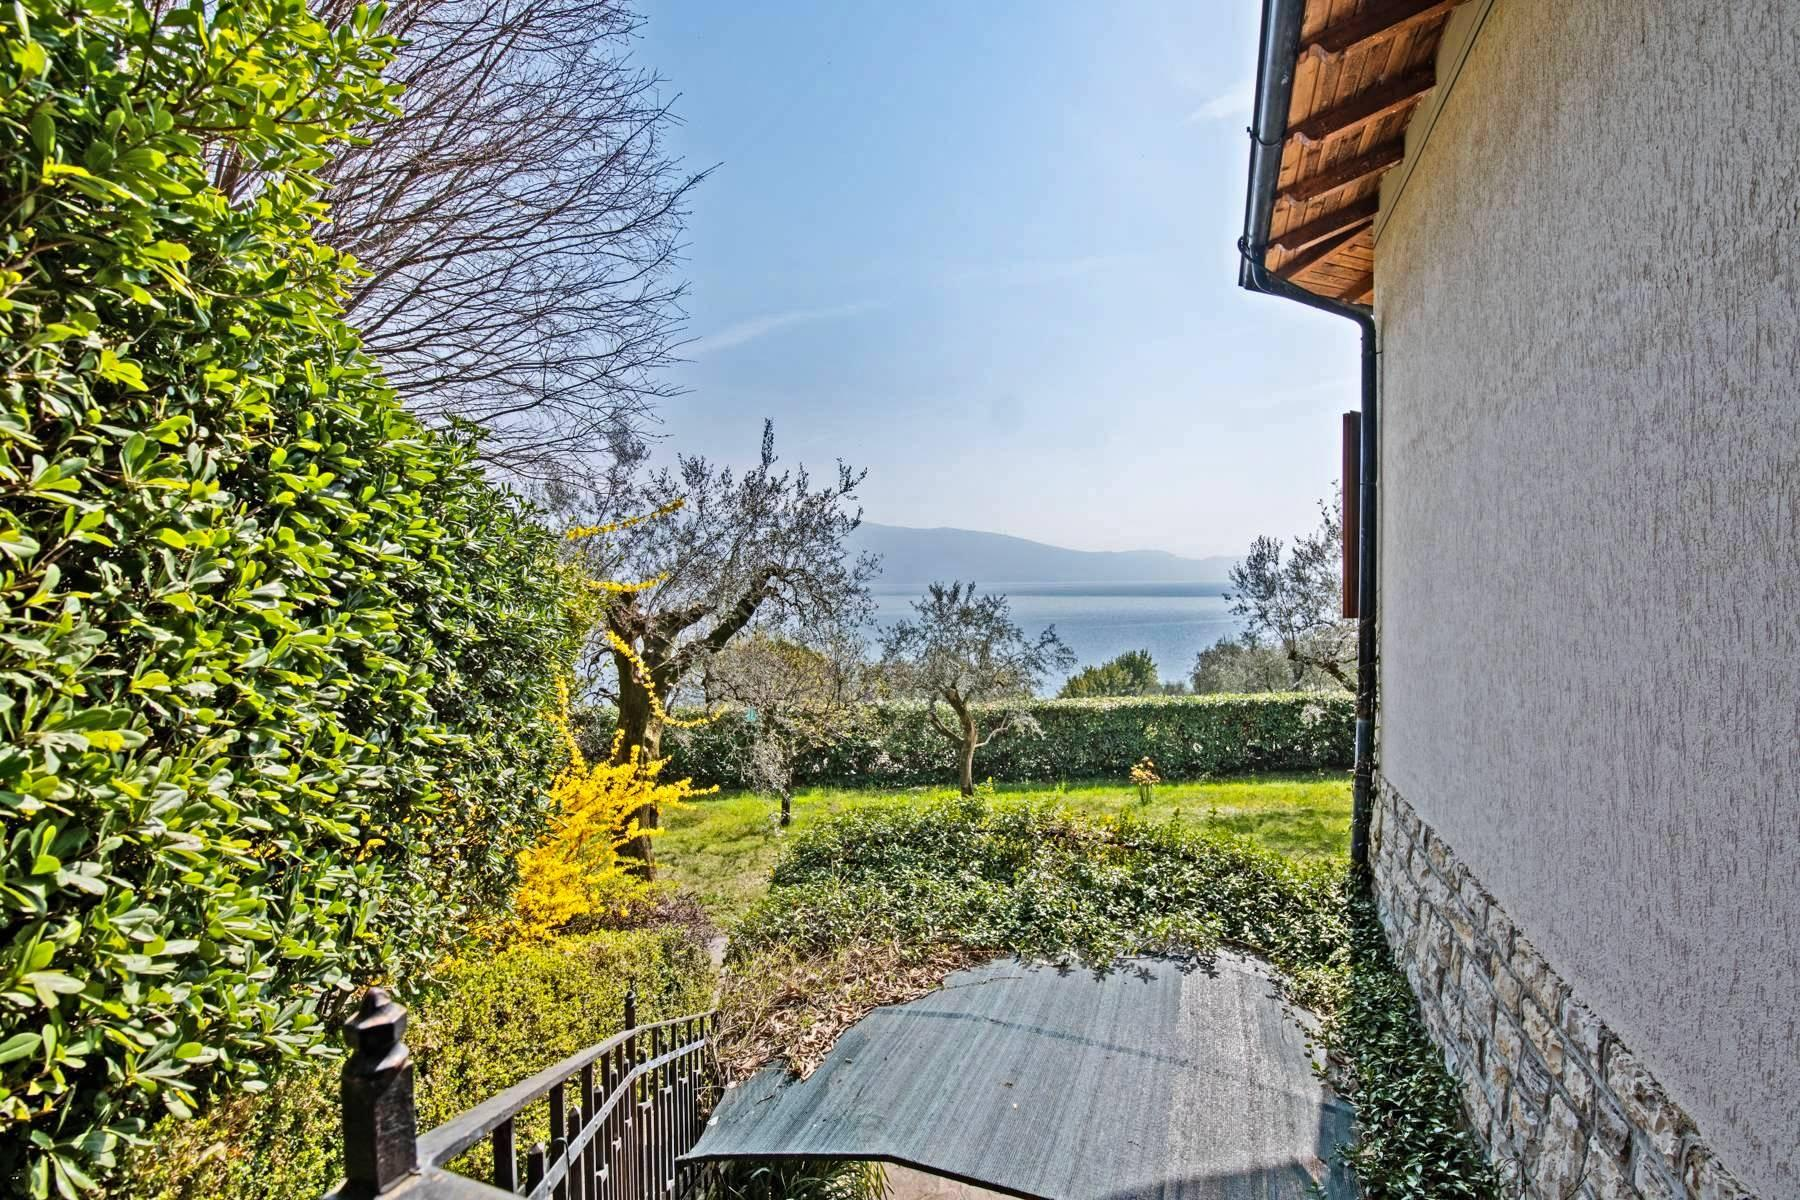 Villa with lake view in Gargnano surrounded by olive trees - 22